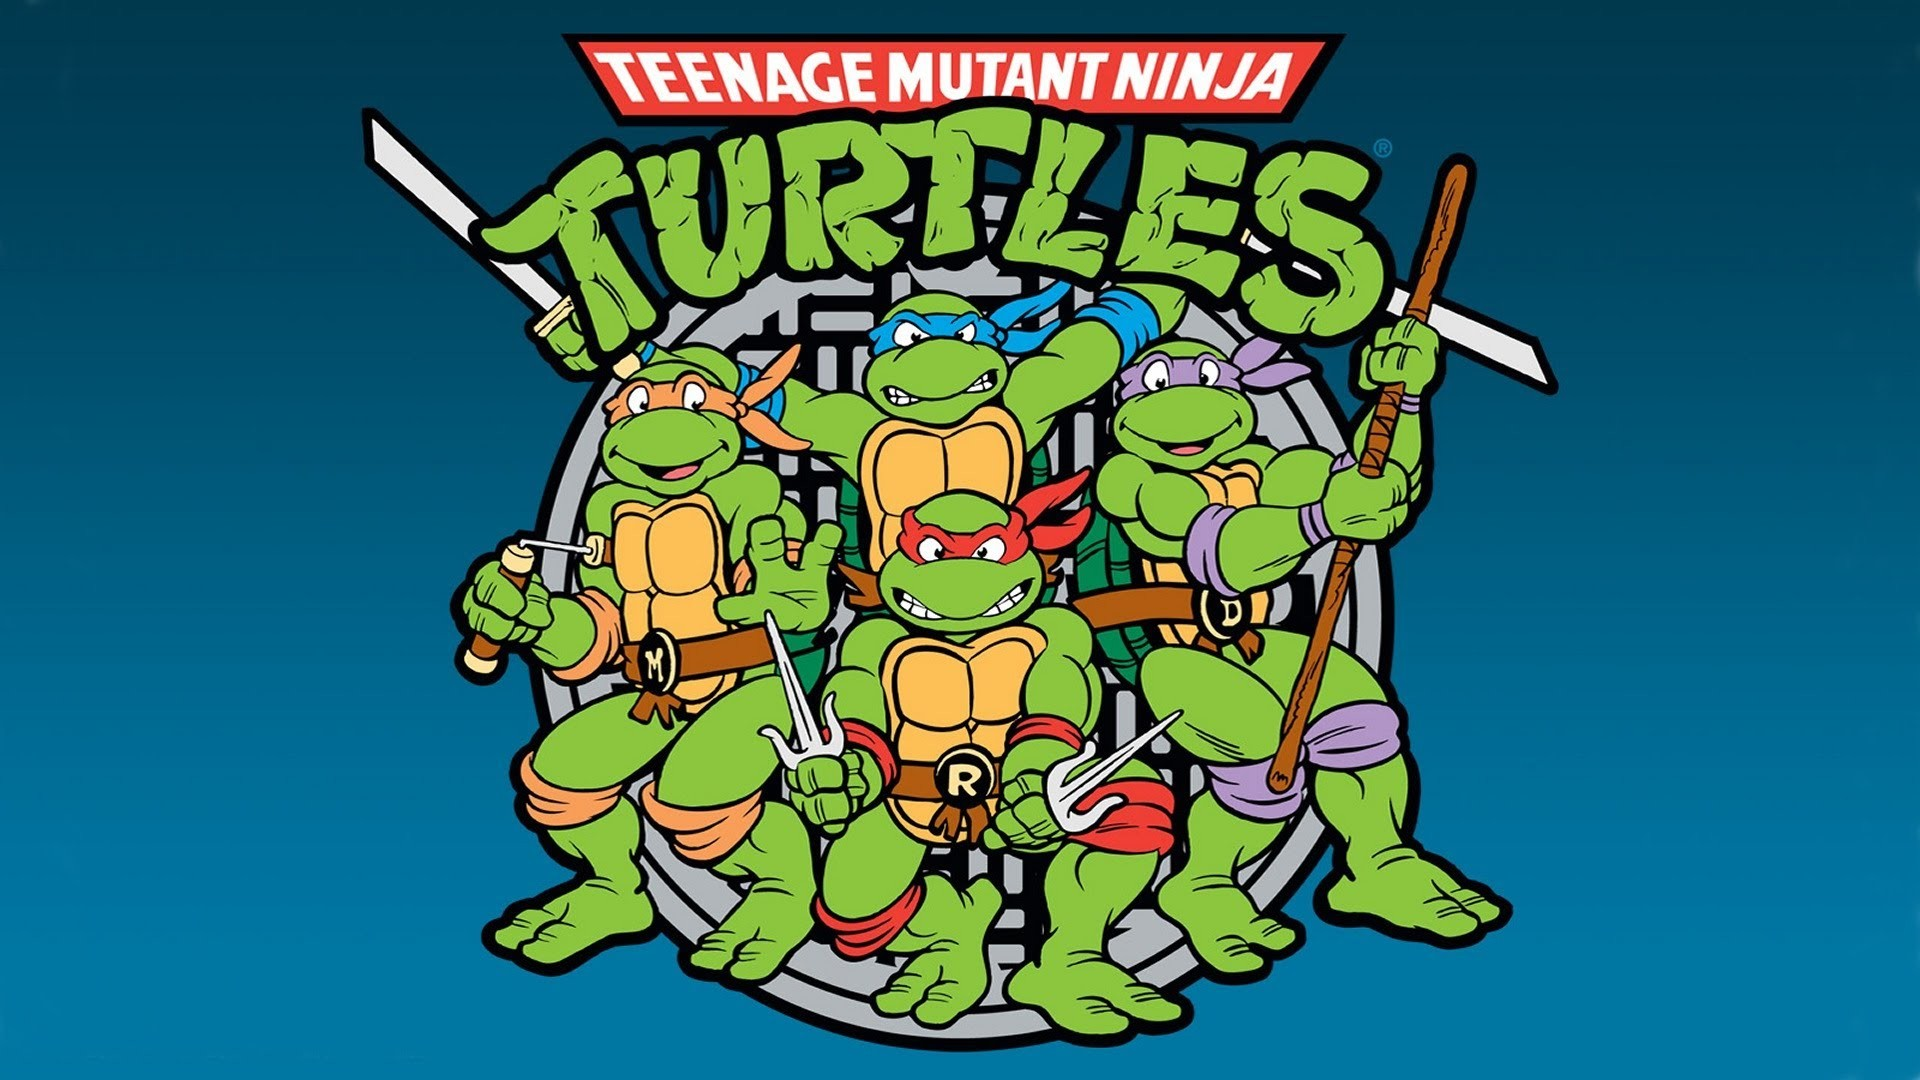 1920x1080 Rise of the Teenage Mutant Ninja Turtles: Nickelodeon Orders New Animated  Series - canceled TV shows - TV Series Finale